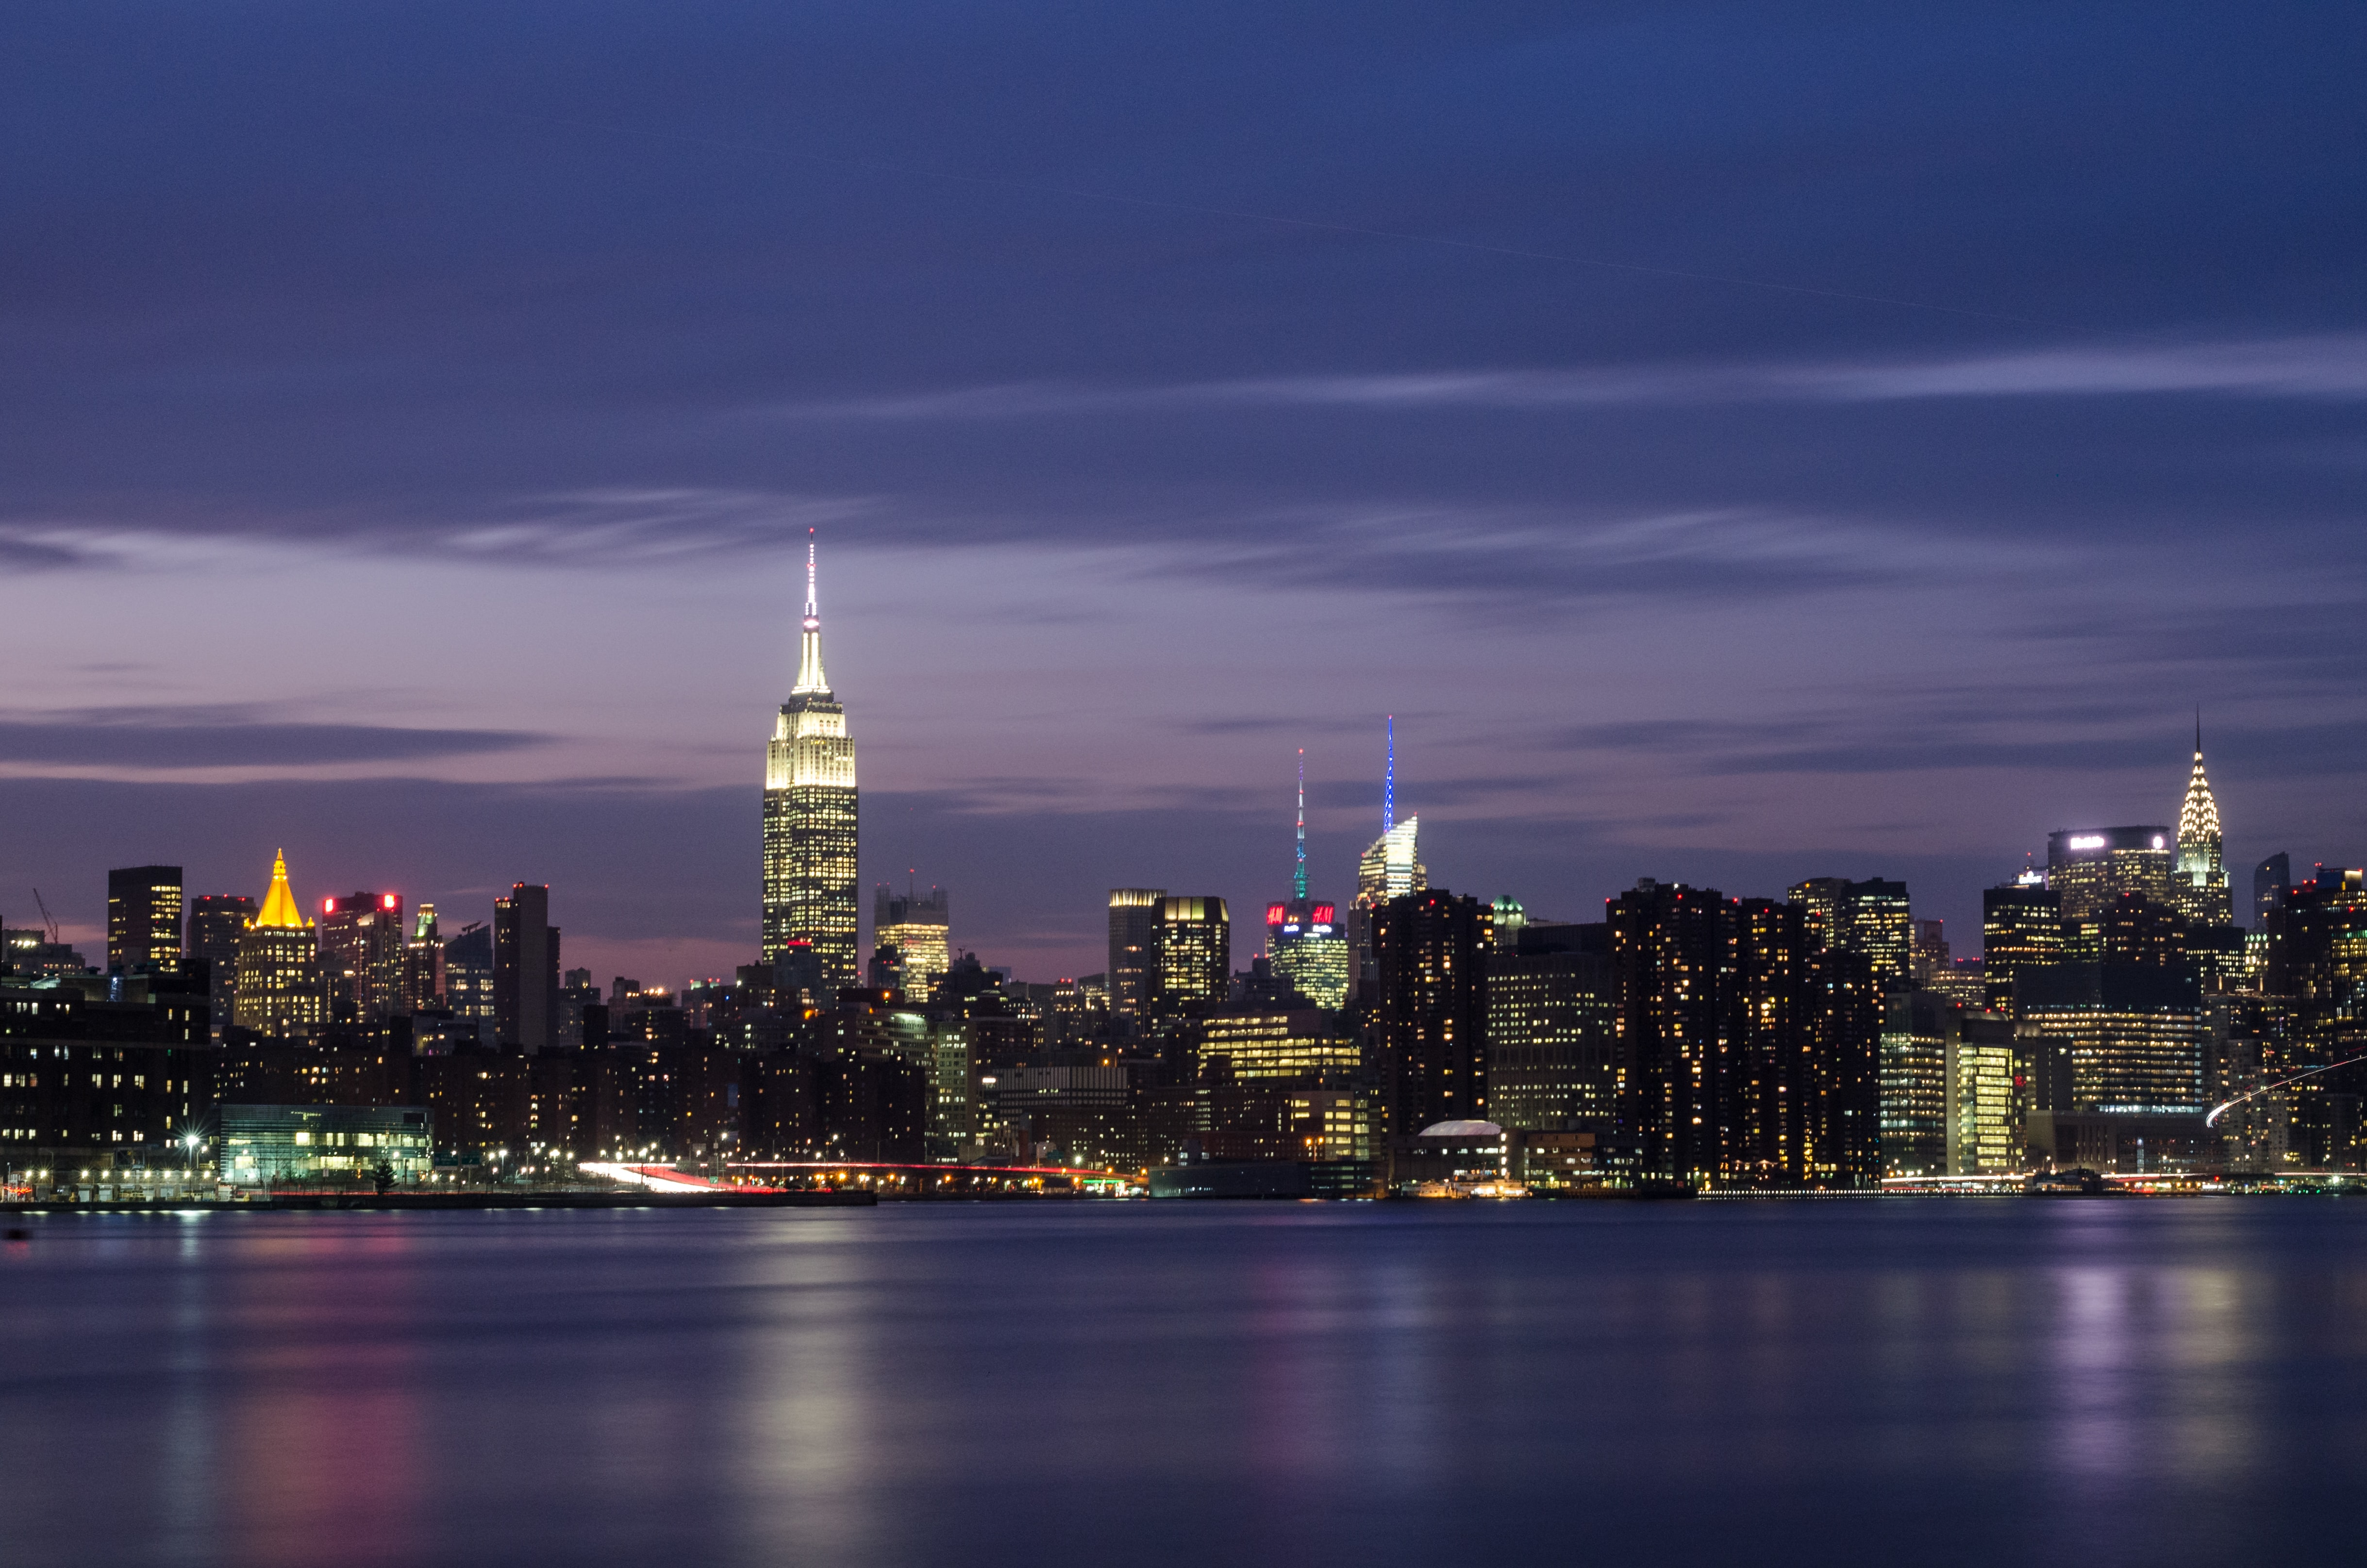 New York city during nighttime